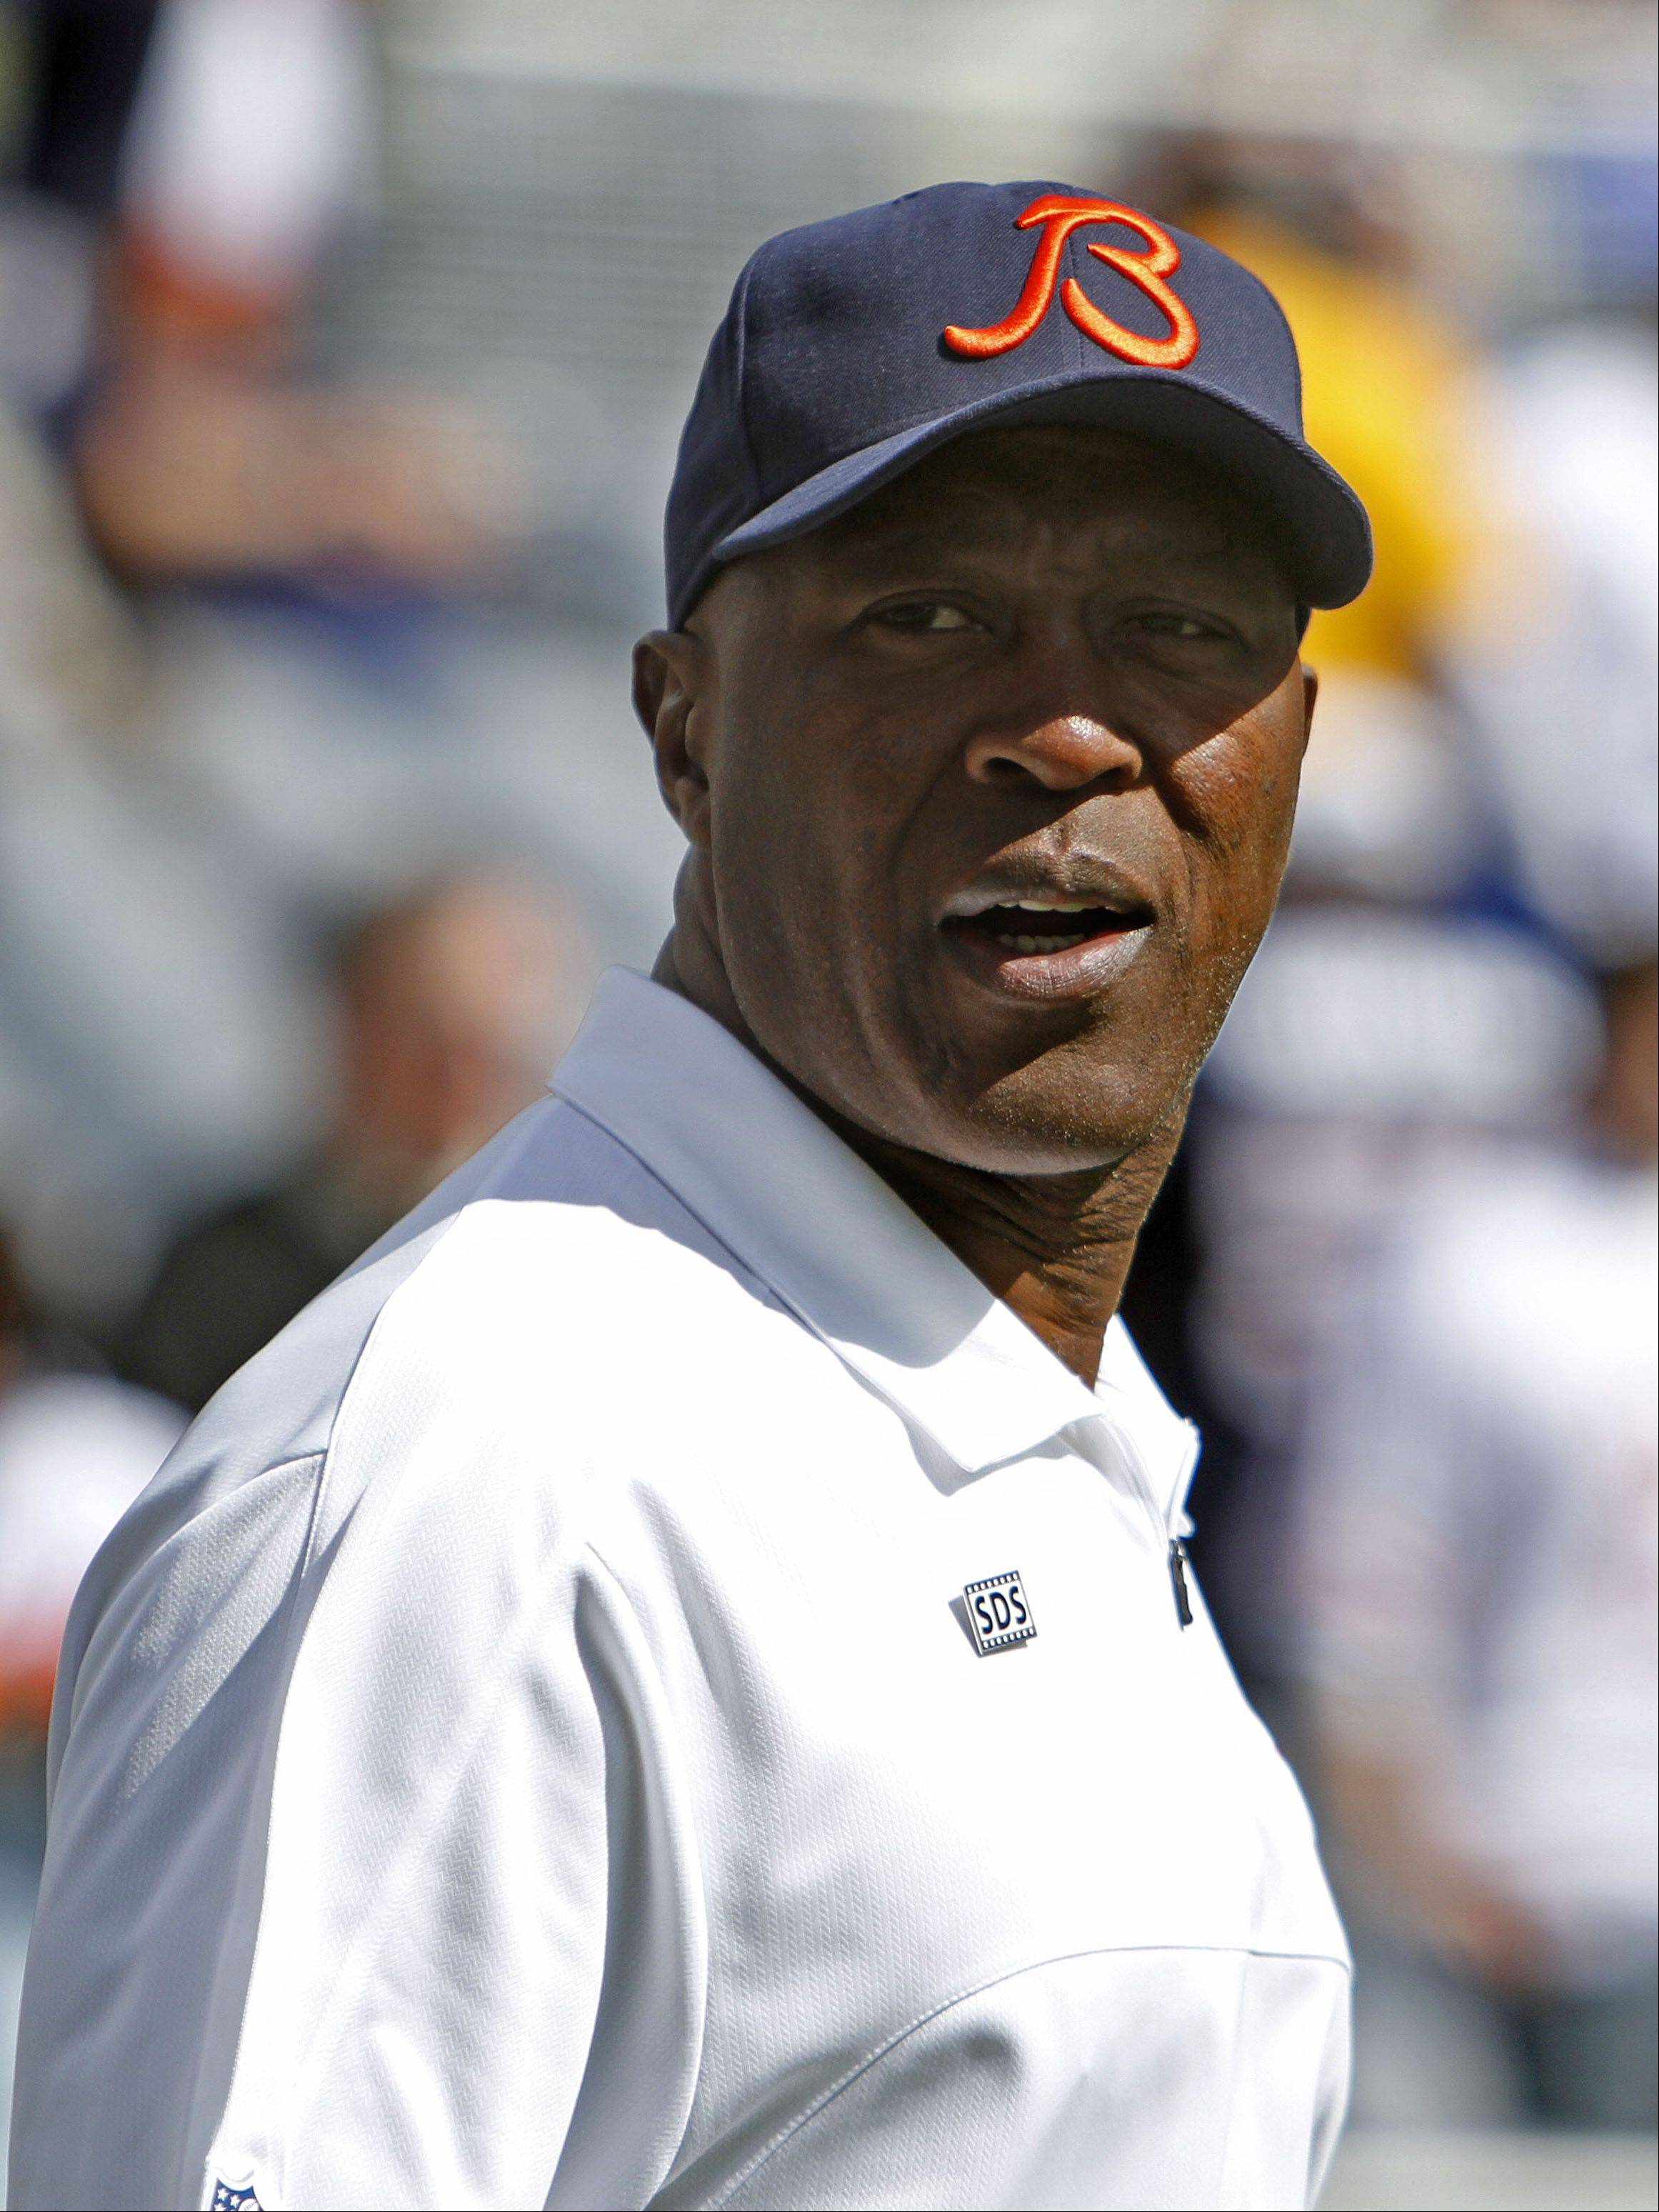 Bears head coach Lovie Smith's team was 2-3 a year ago after losing a Monday night game to Detroit. Now the Bears are 4-1 heading into next week's game against the Lions.